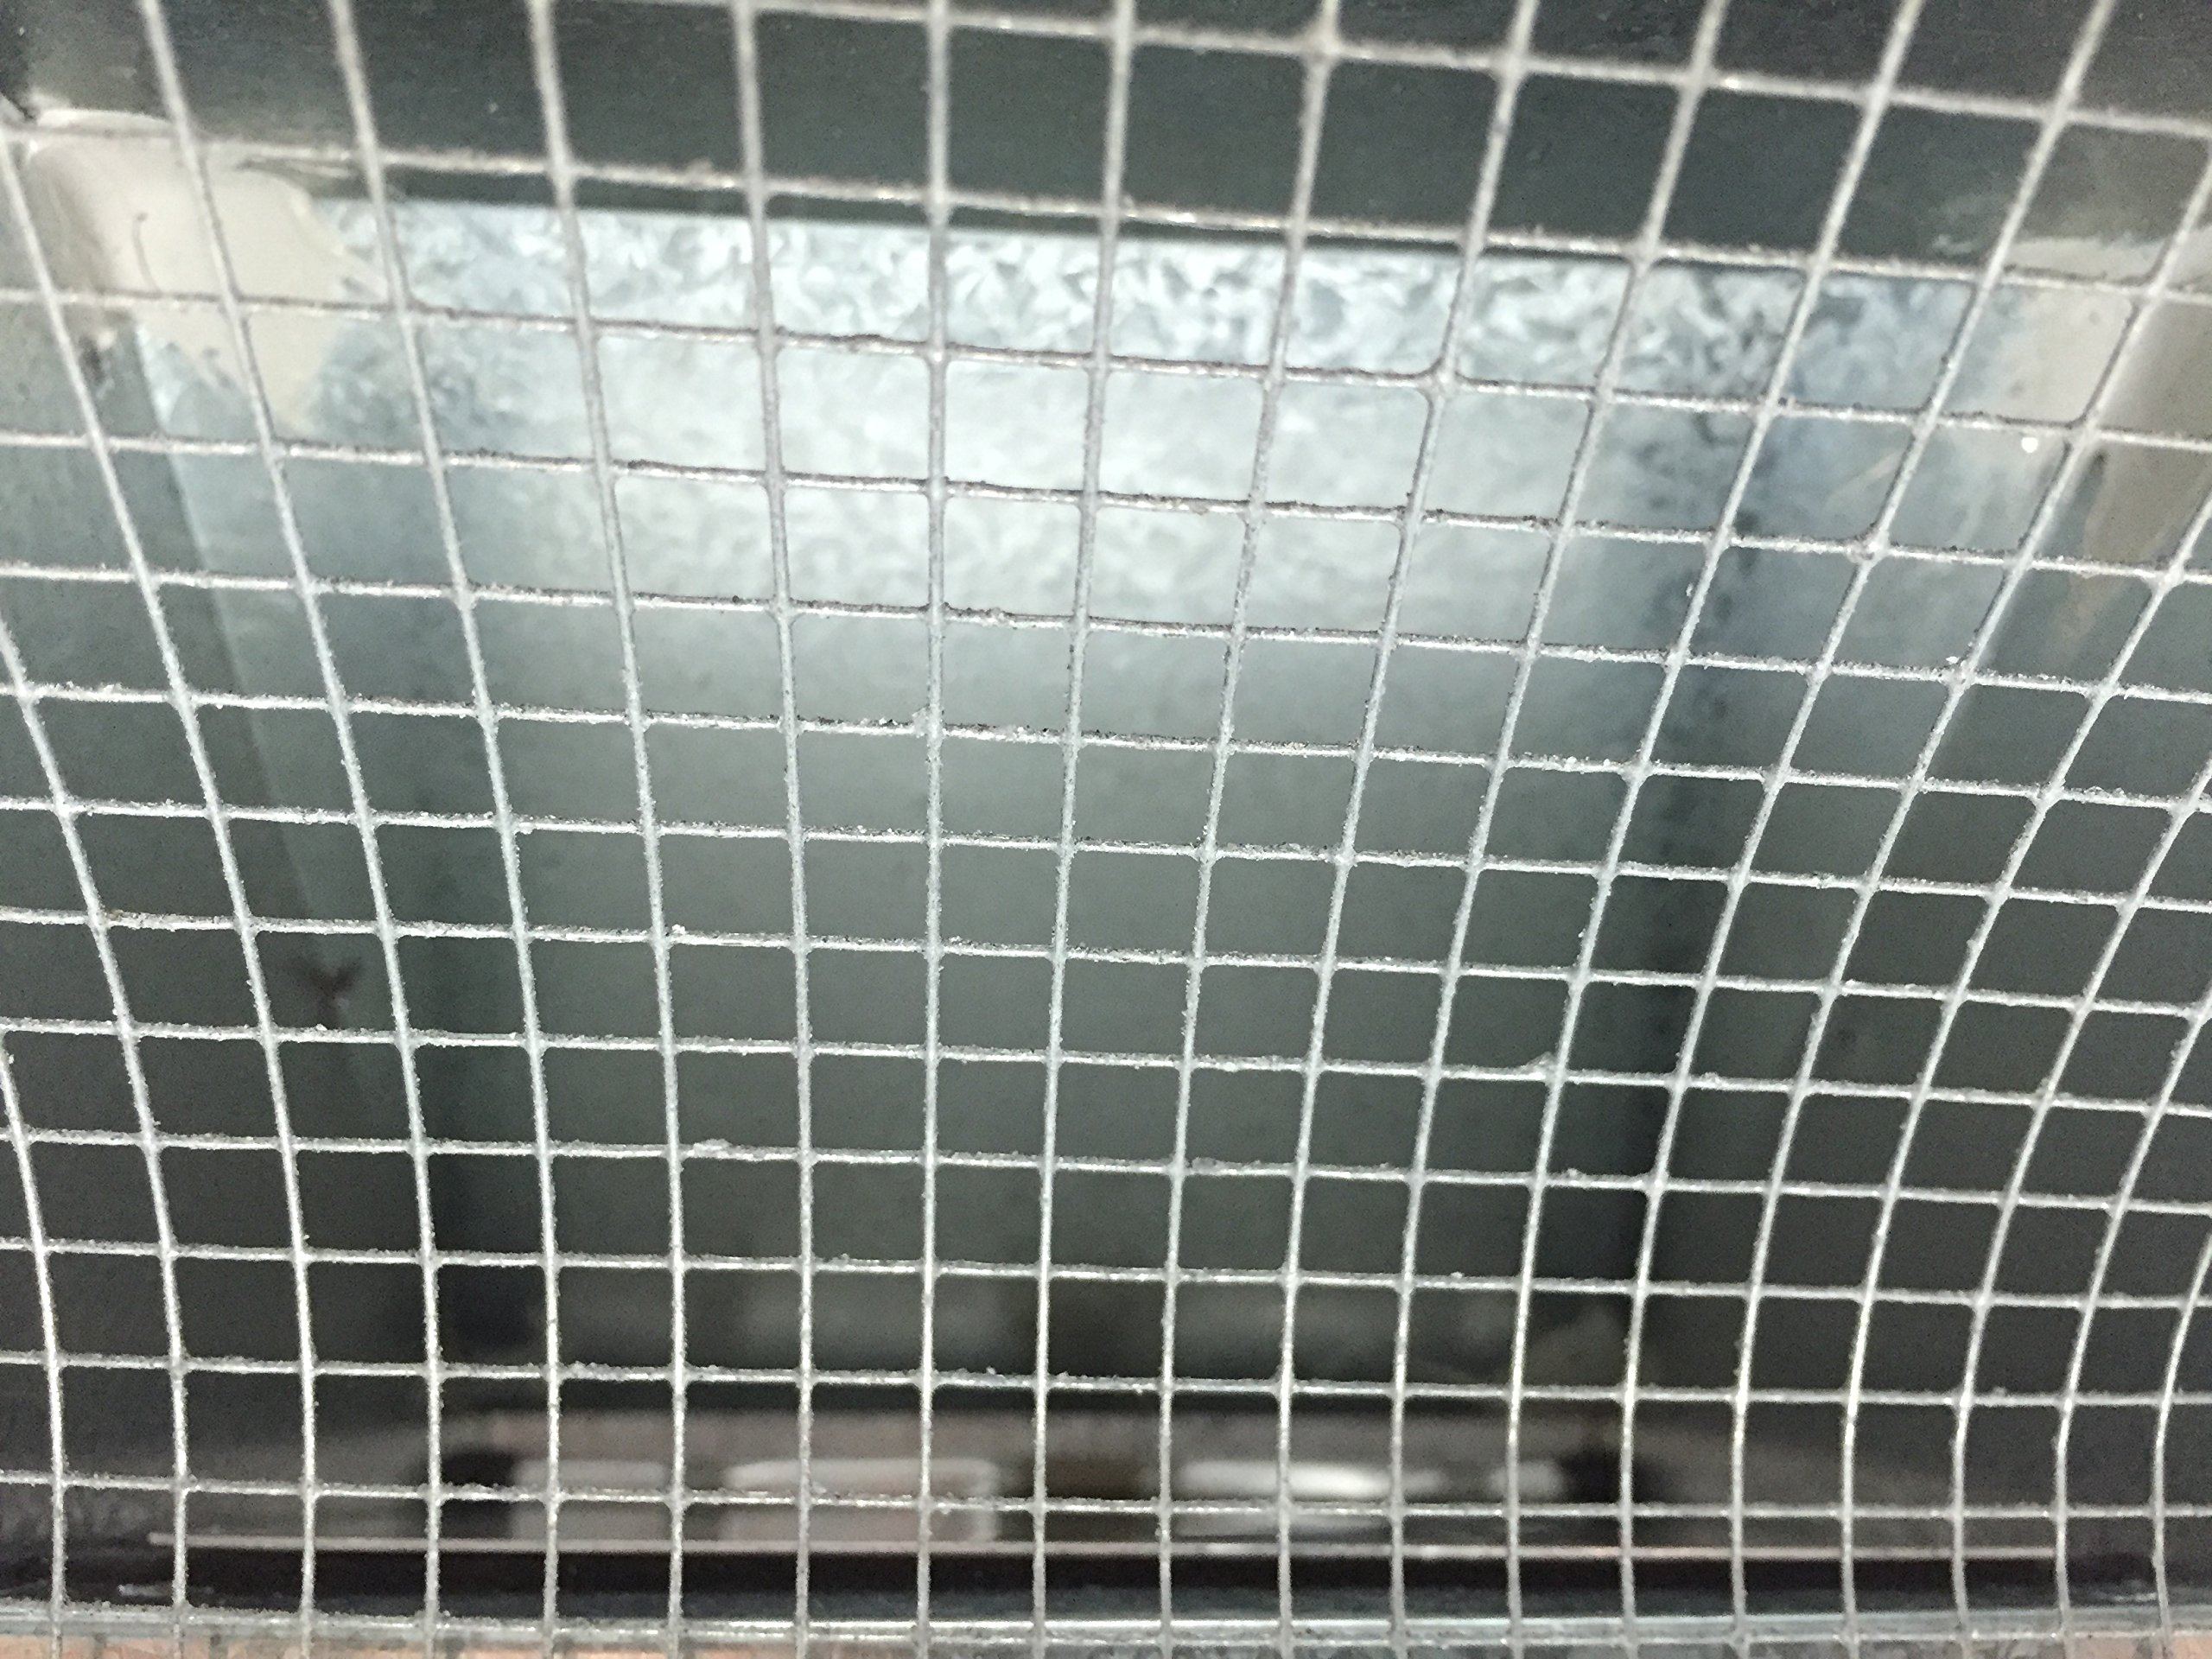 5 Inch Roof Vent Hood Cap Galvanized Damper & Screen - Vent Works by Vent Works (Image #7)